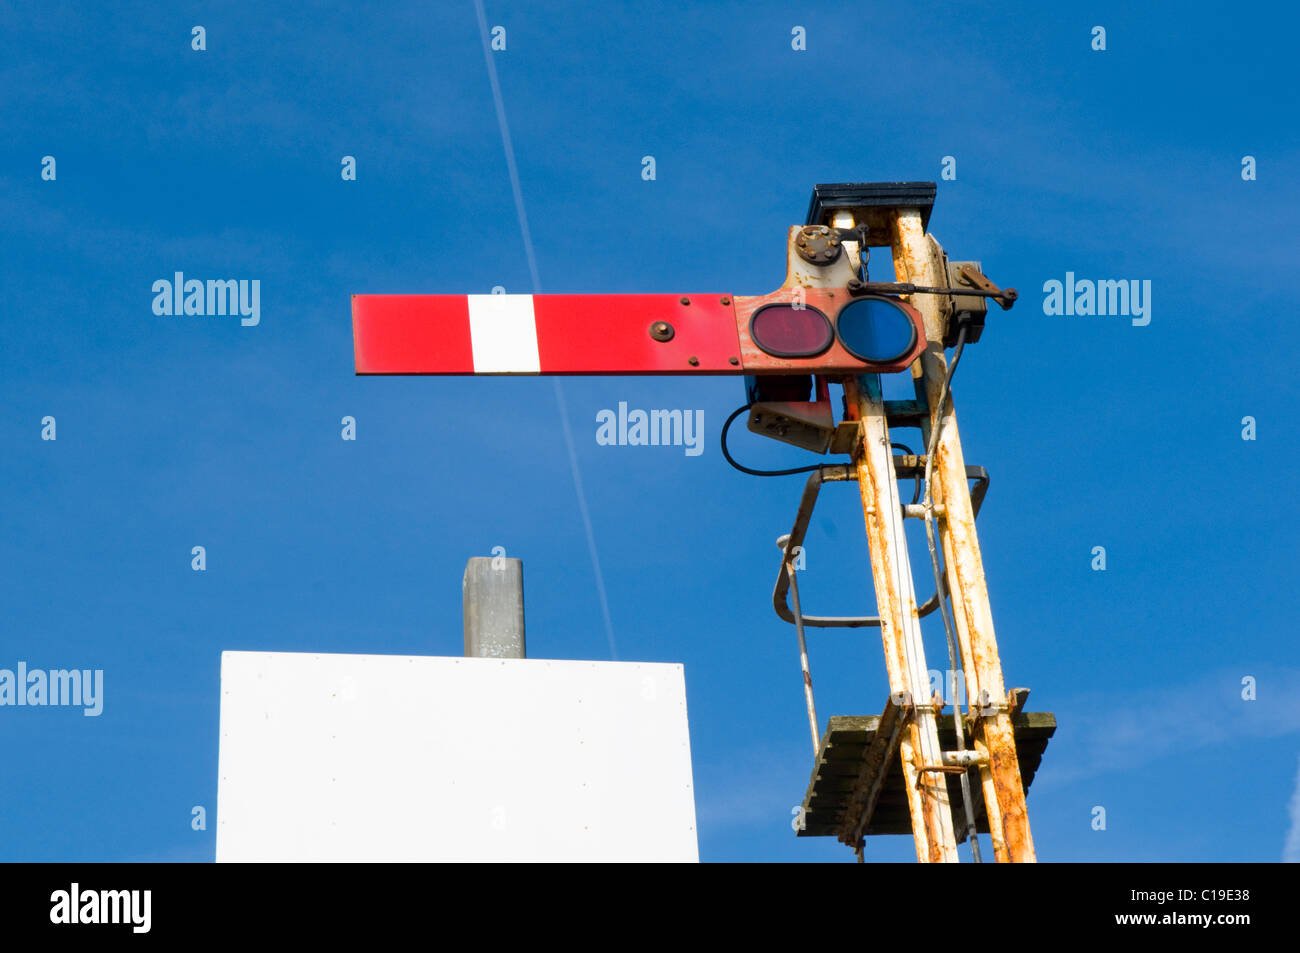 A Railway Semaphore Signal in the Stop or Danger Position Stock Photo